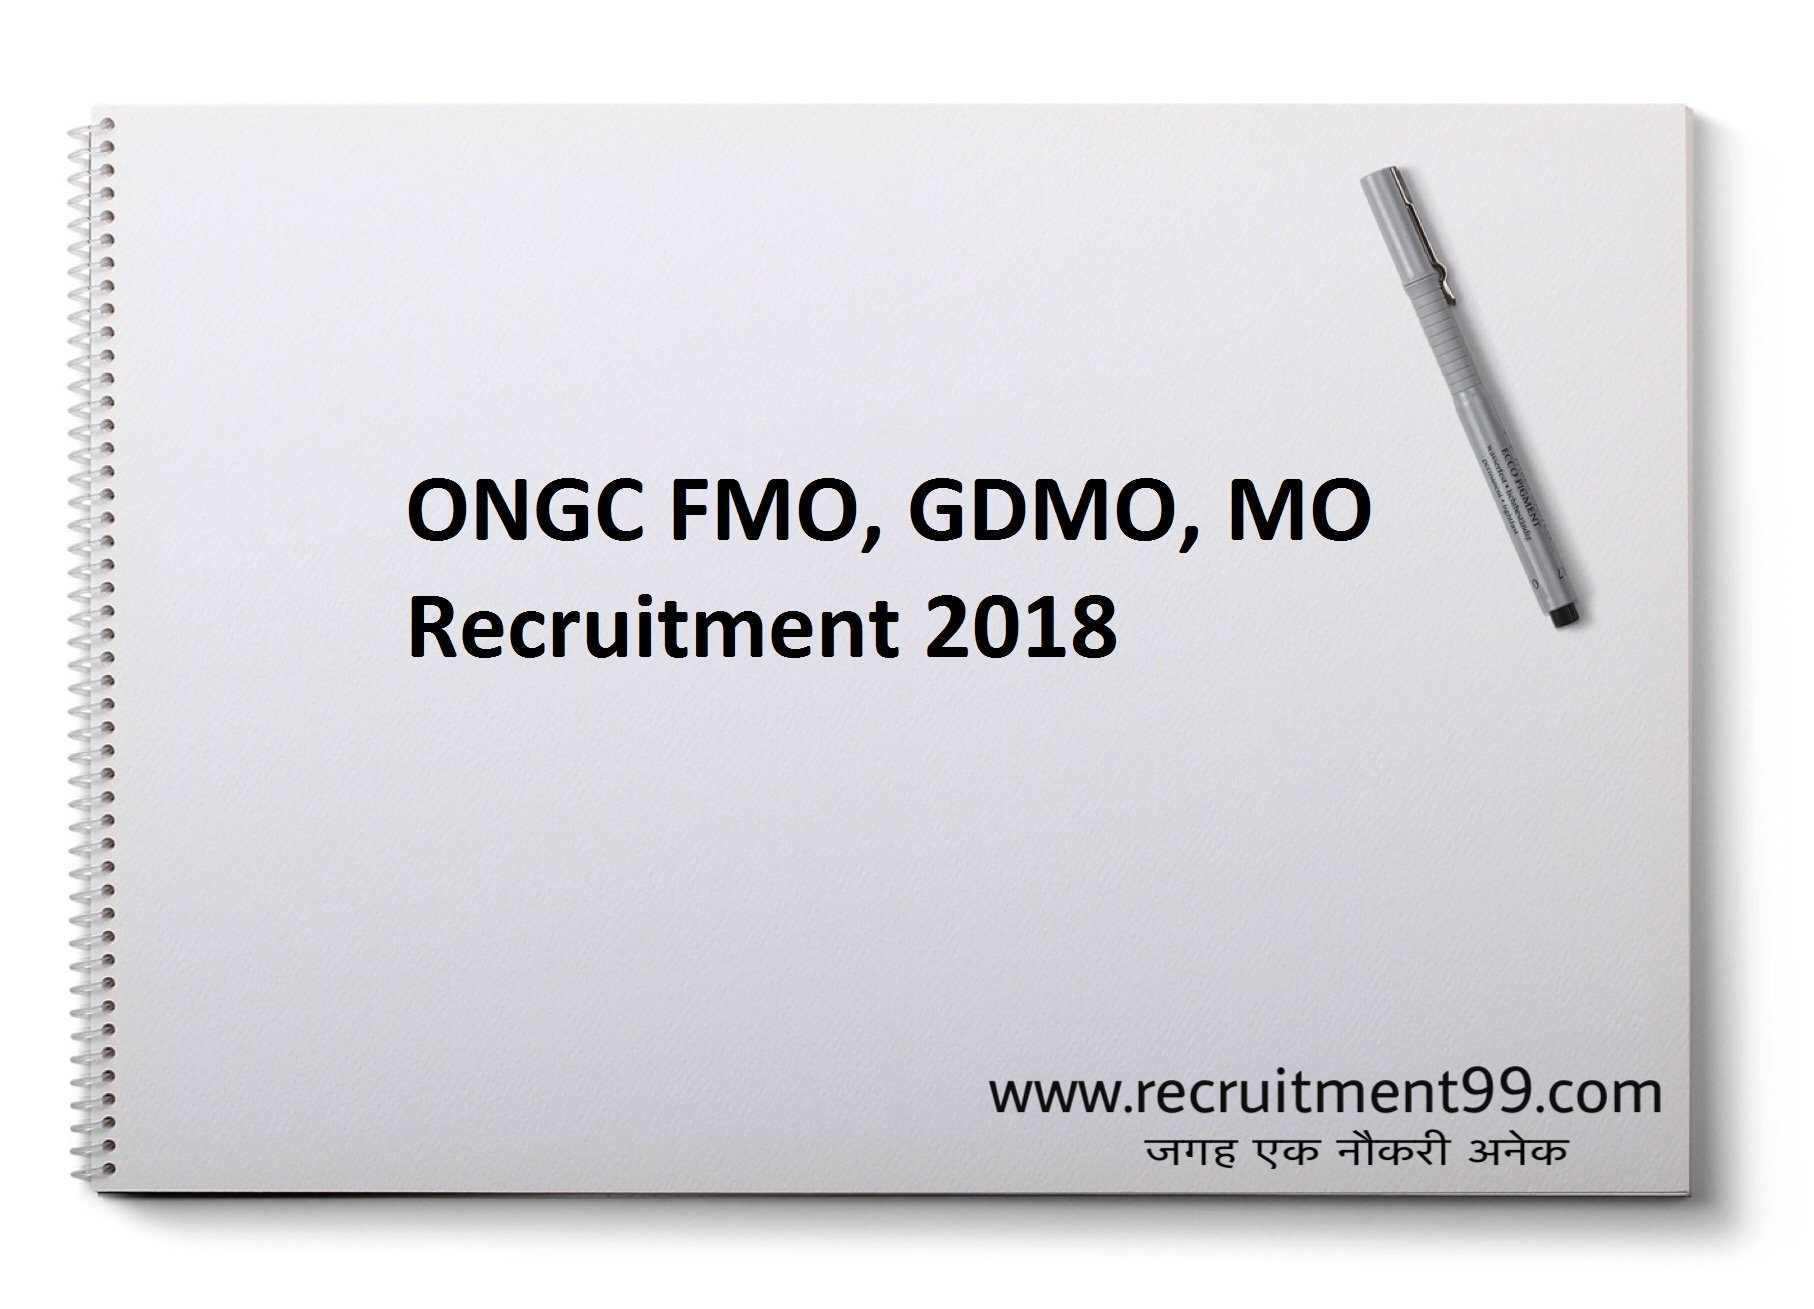 ONGC FMO GDMO MO Recruitment Admit Card Result 2018